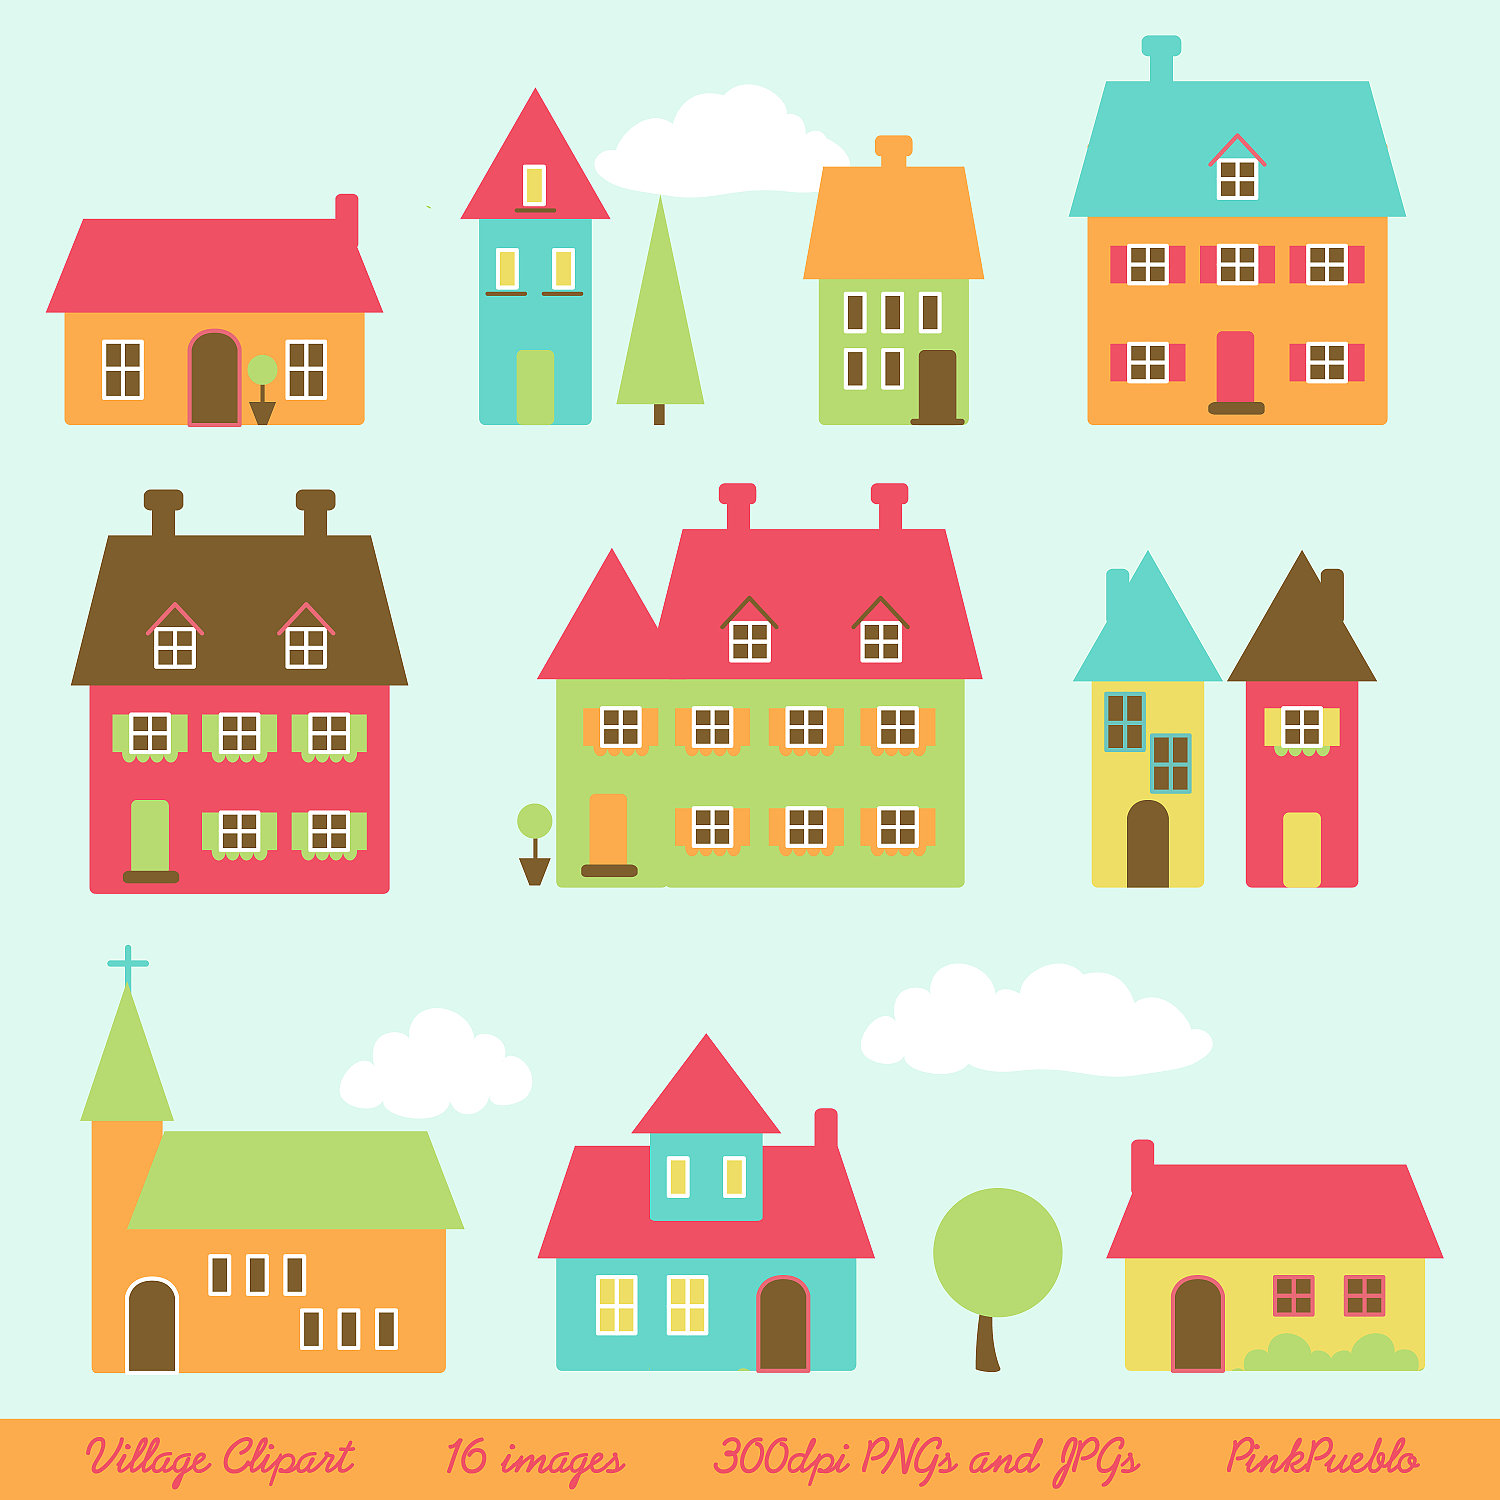 Neighborhood clipart townhouse. Free cliparts download clip